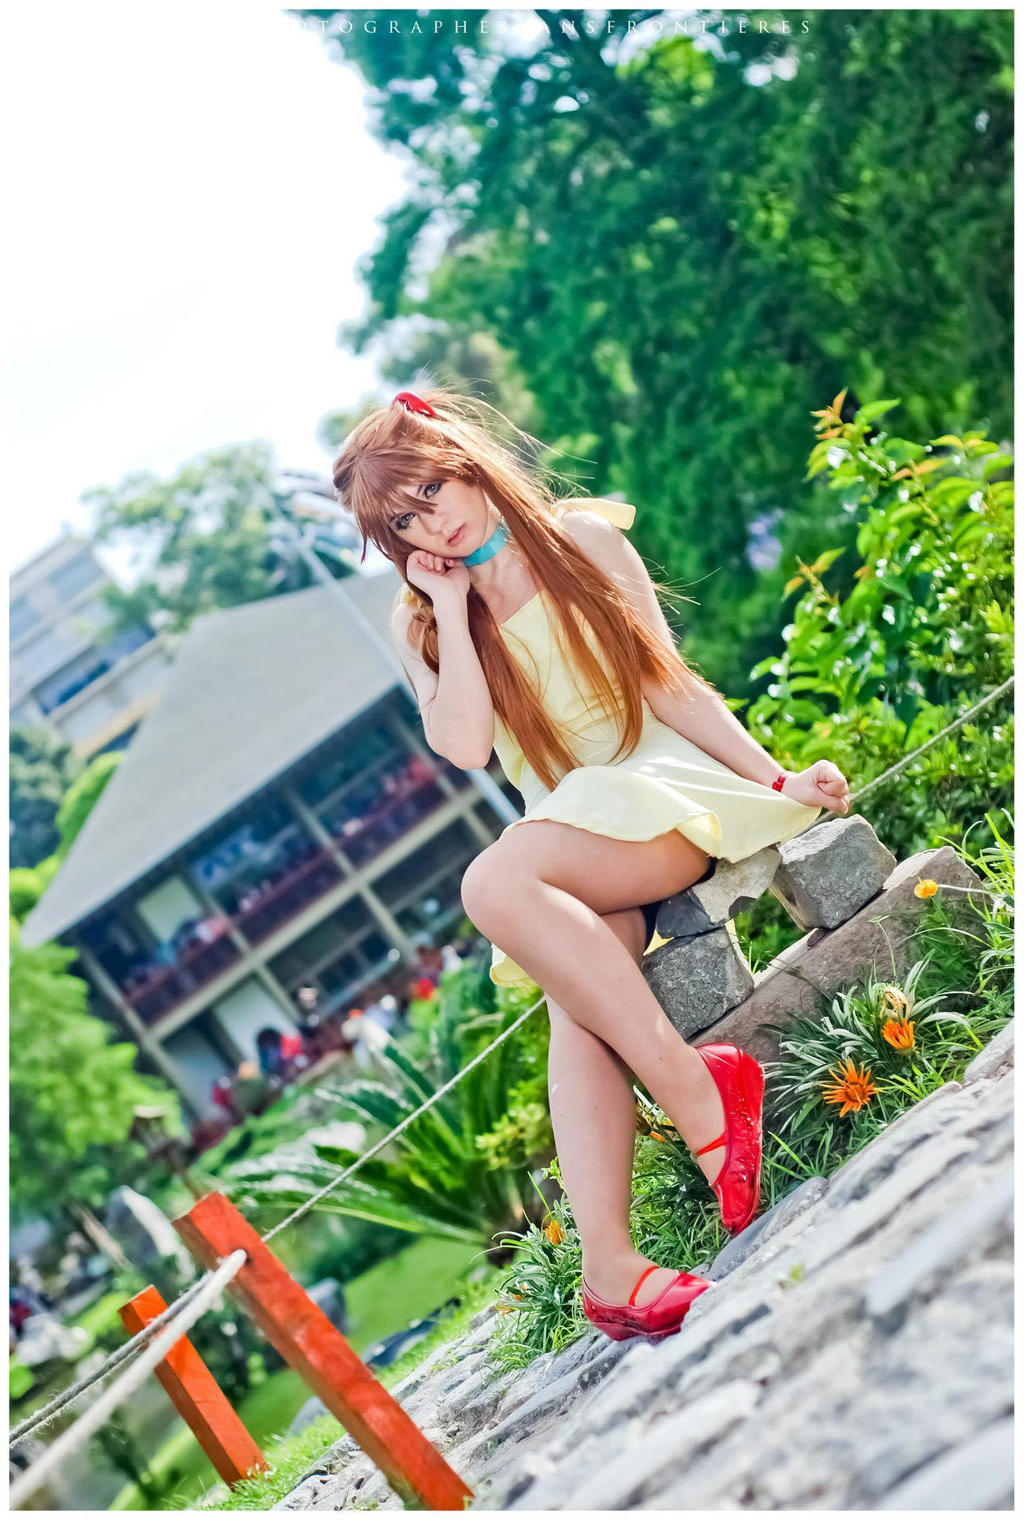 asuka cosplay by neliiell